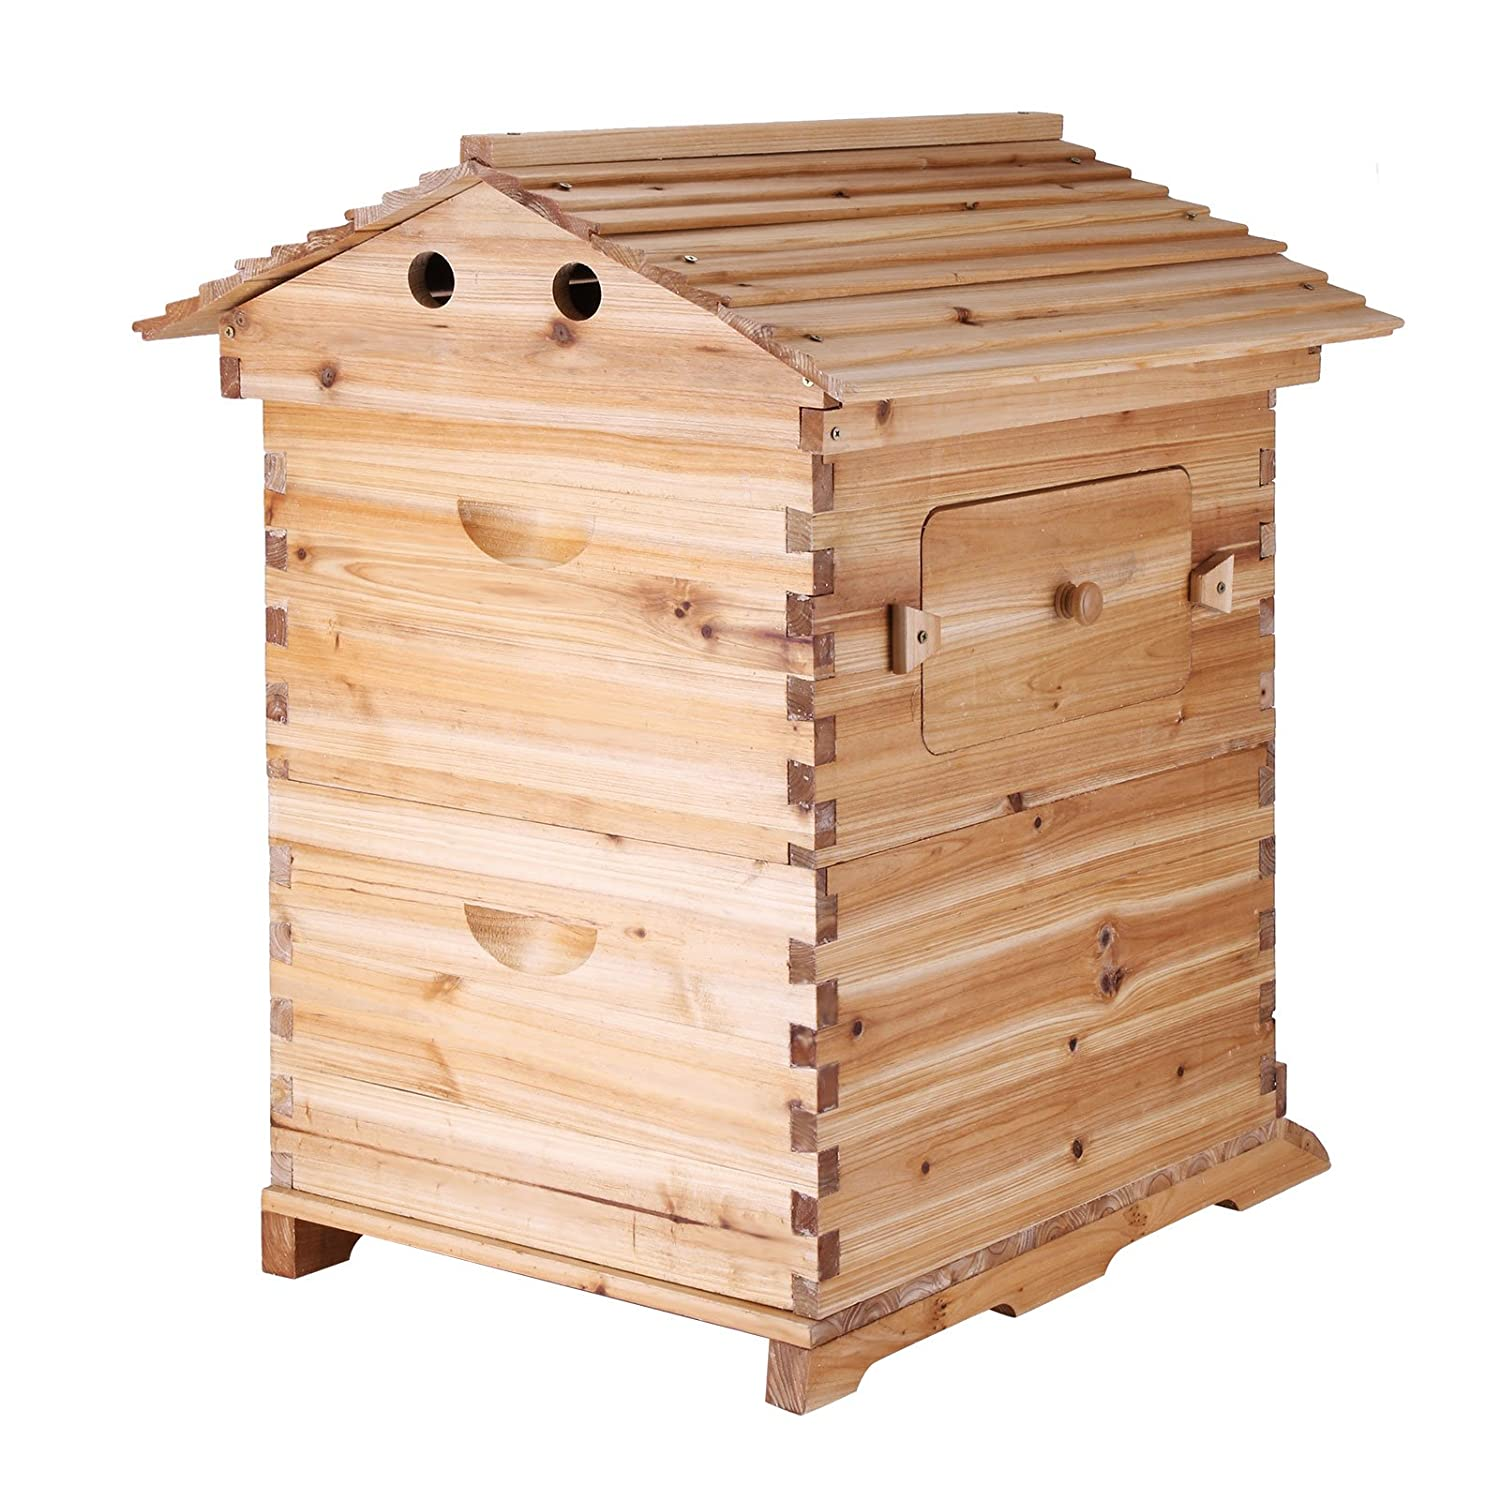 amazoncom vevor beehive frames wooden beehive frames bulk automatic honey beehive box kit with 7 standard frames patio lawn u0026 garden